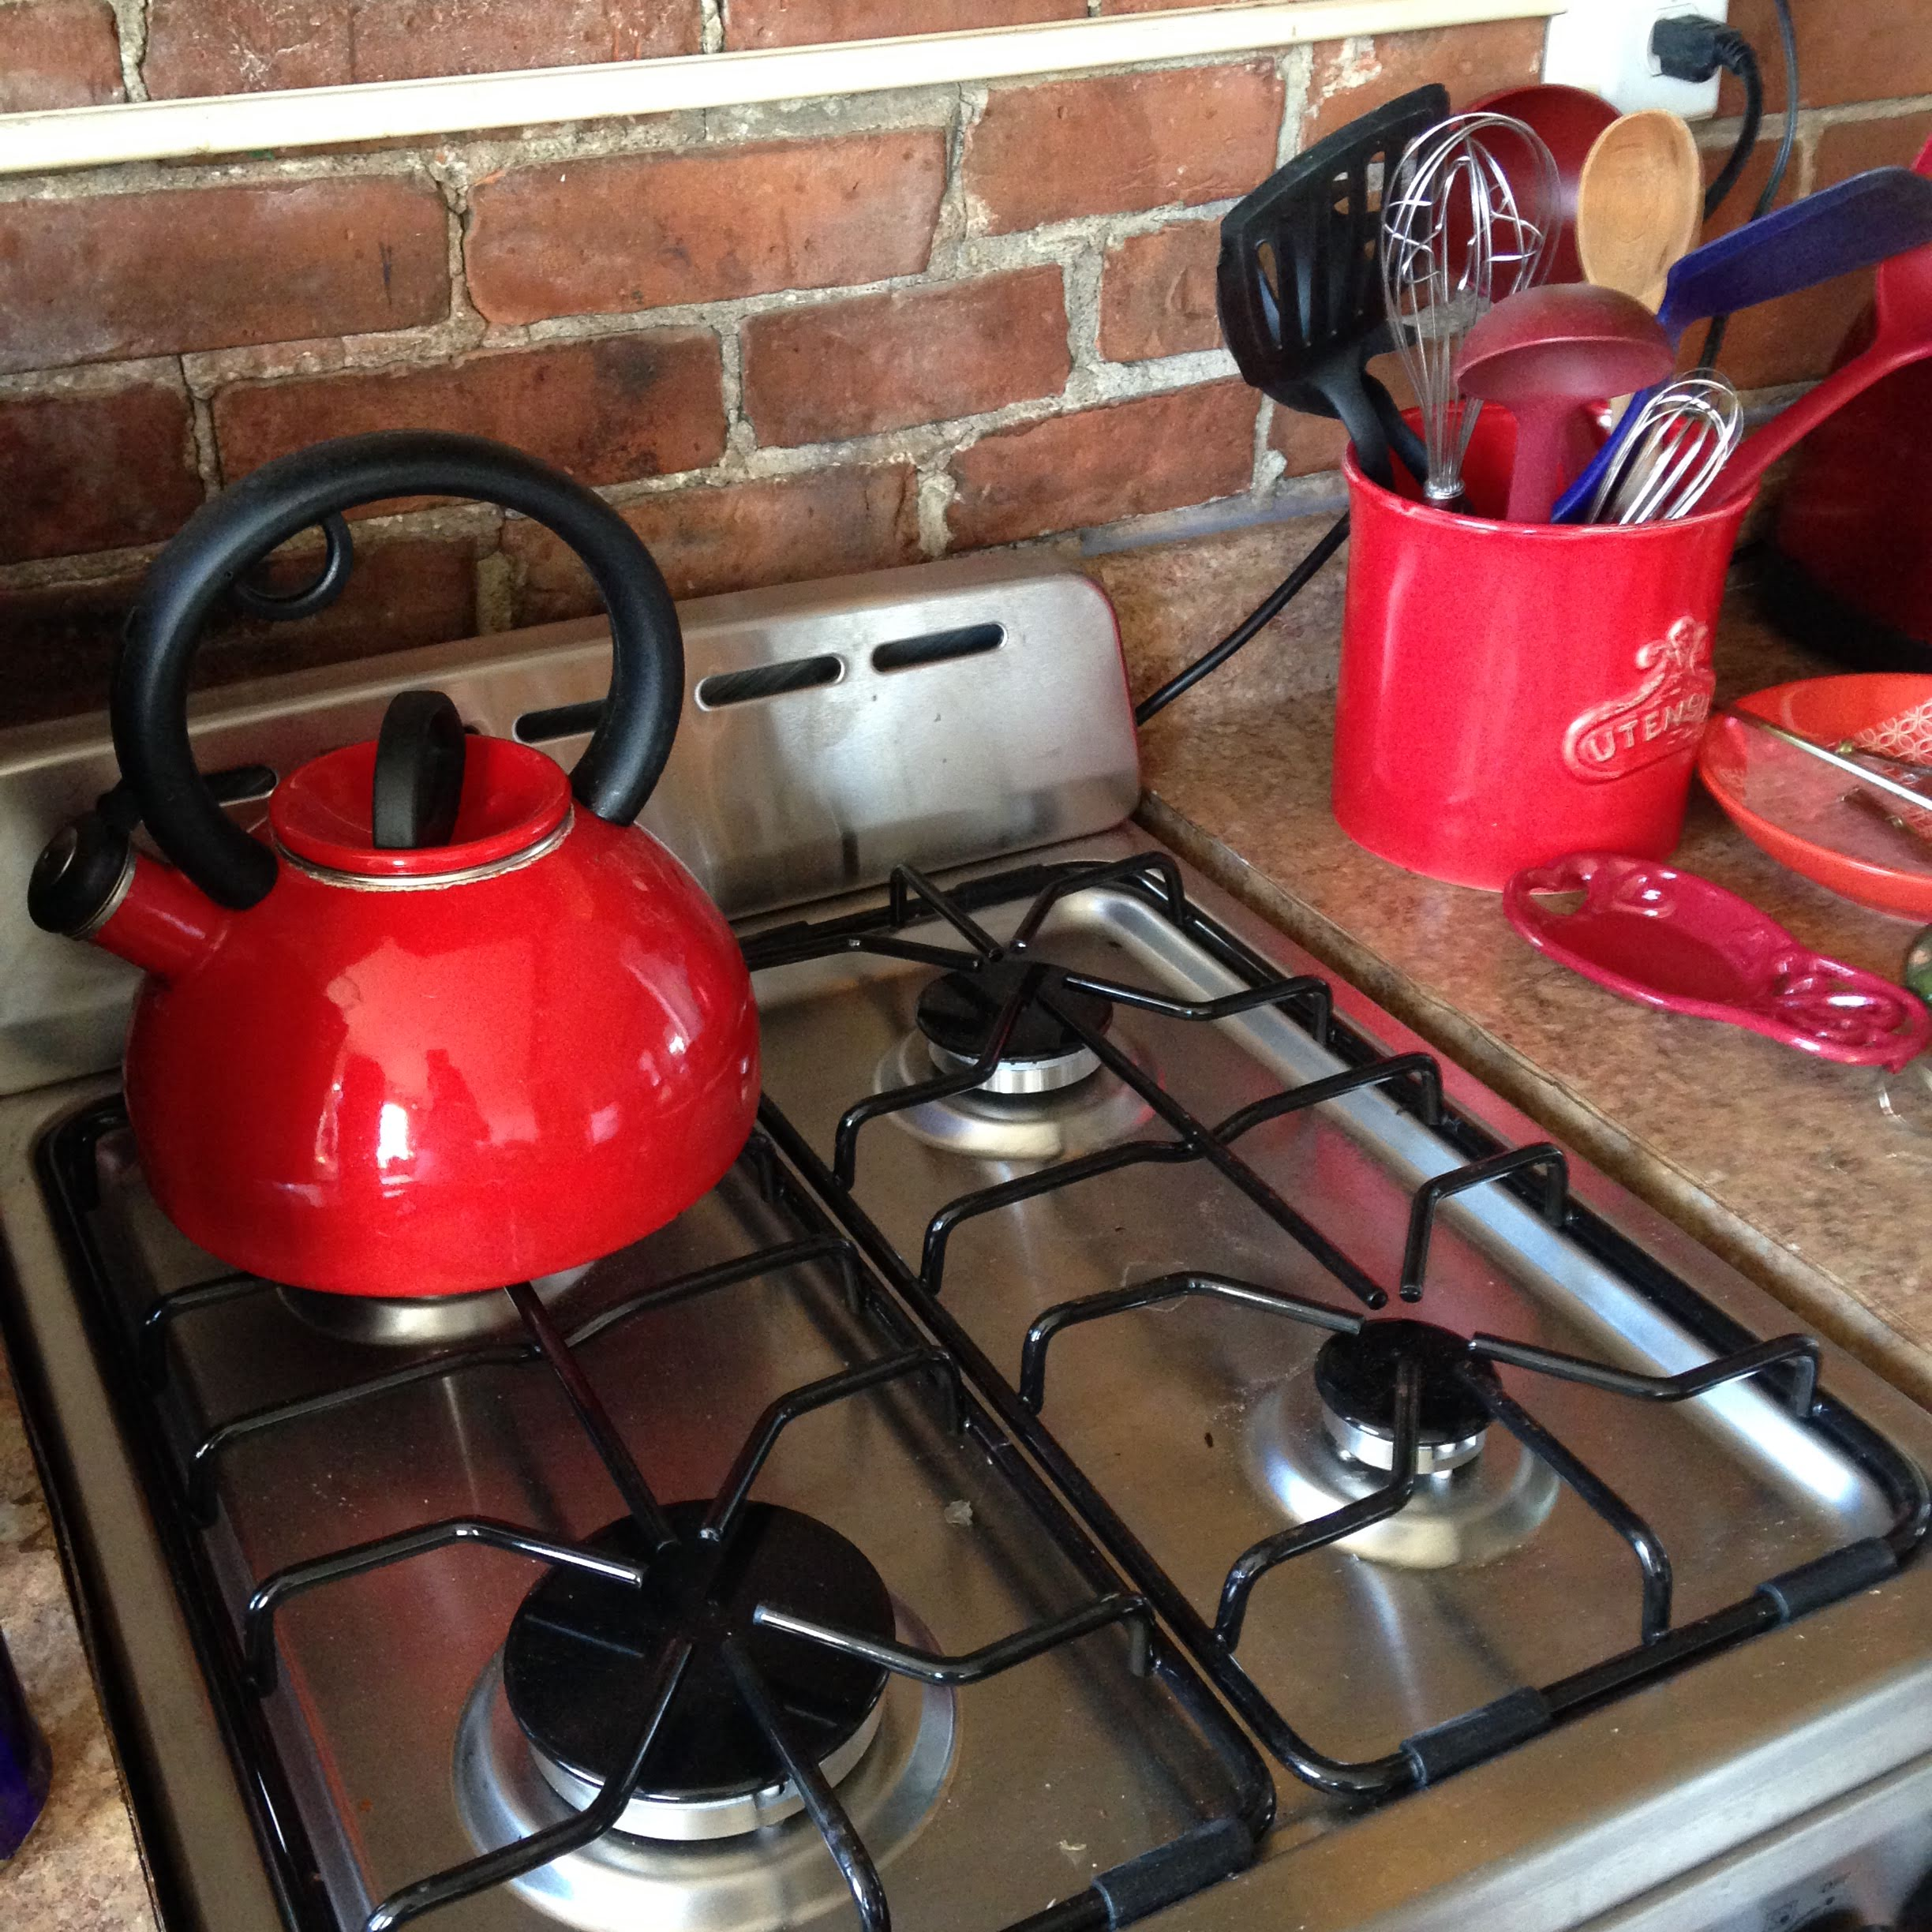 red-kettle-stove